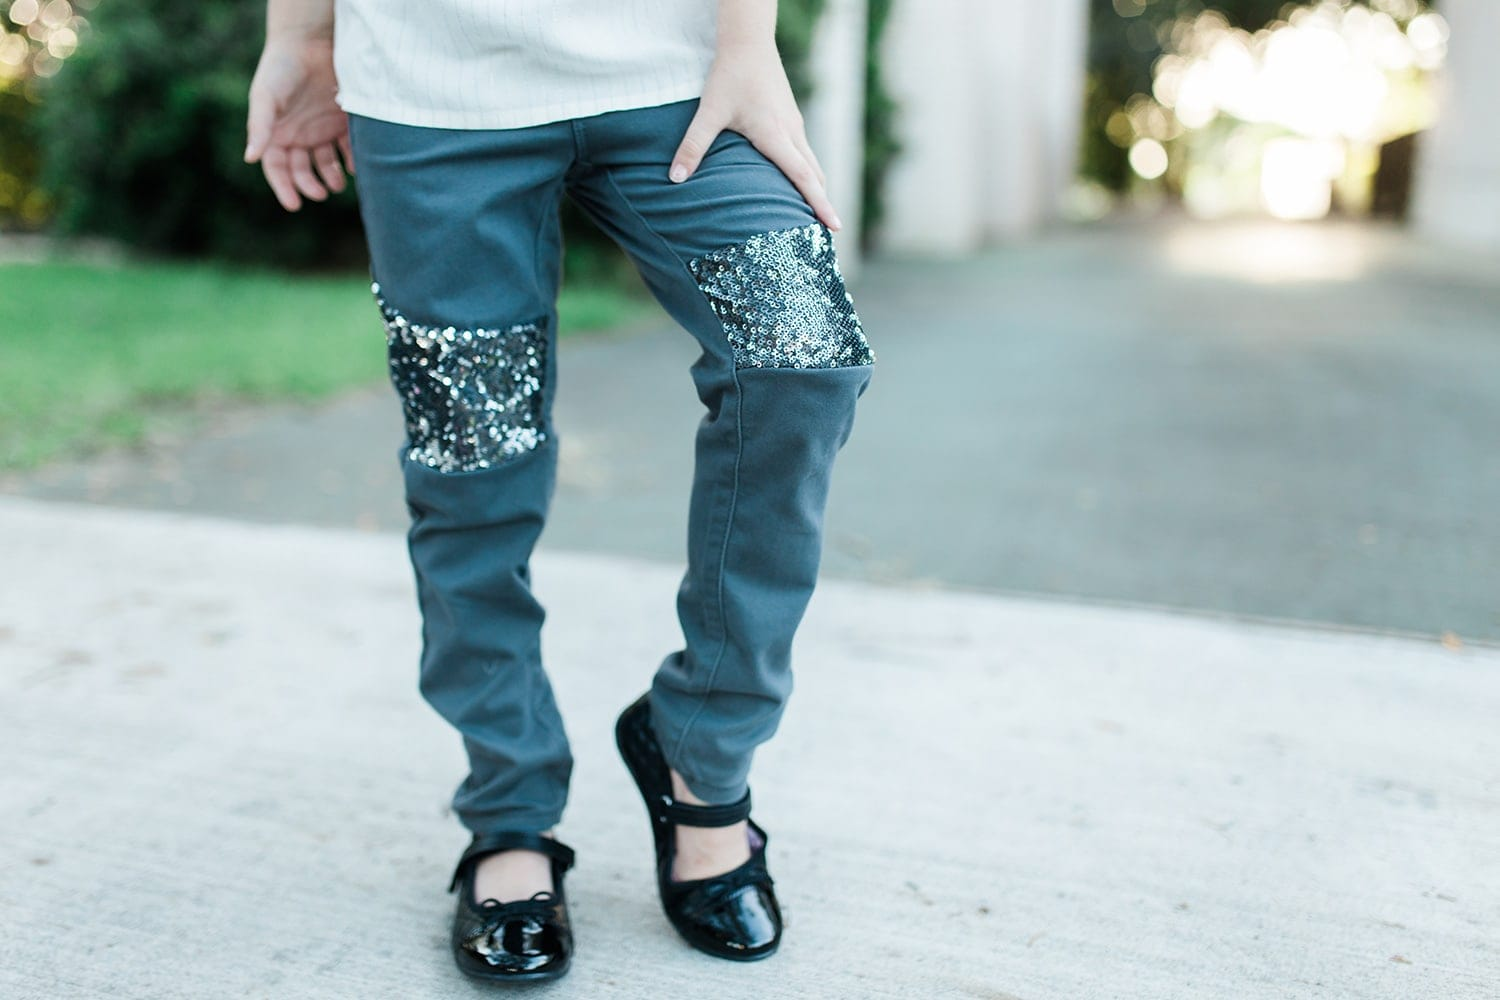 sparkle jeggings are on trend for back to school outfits!